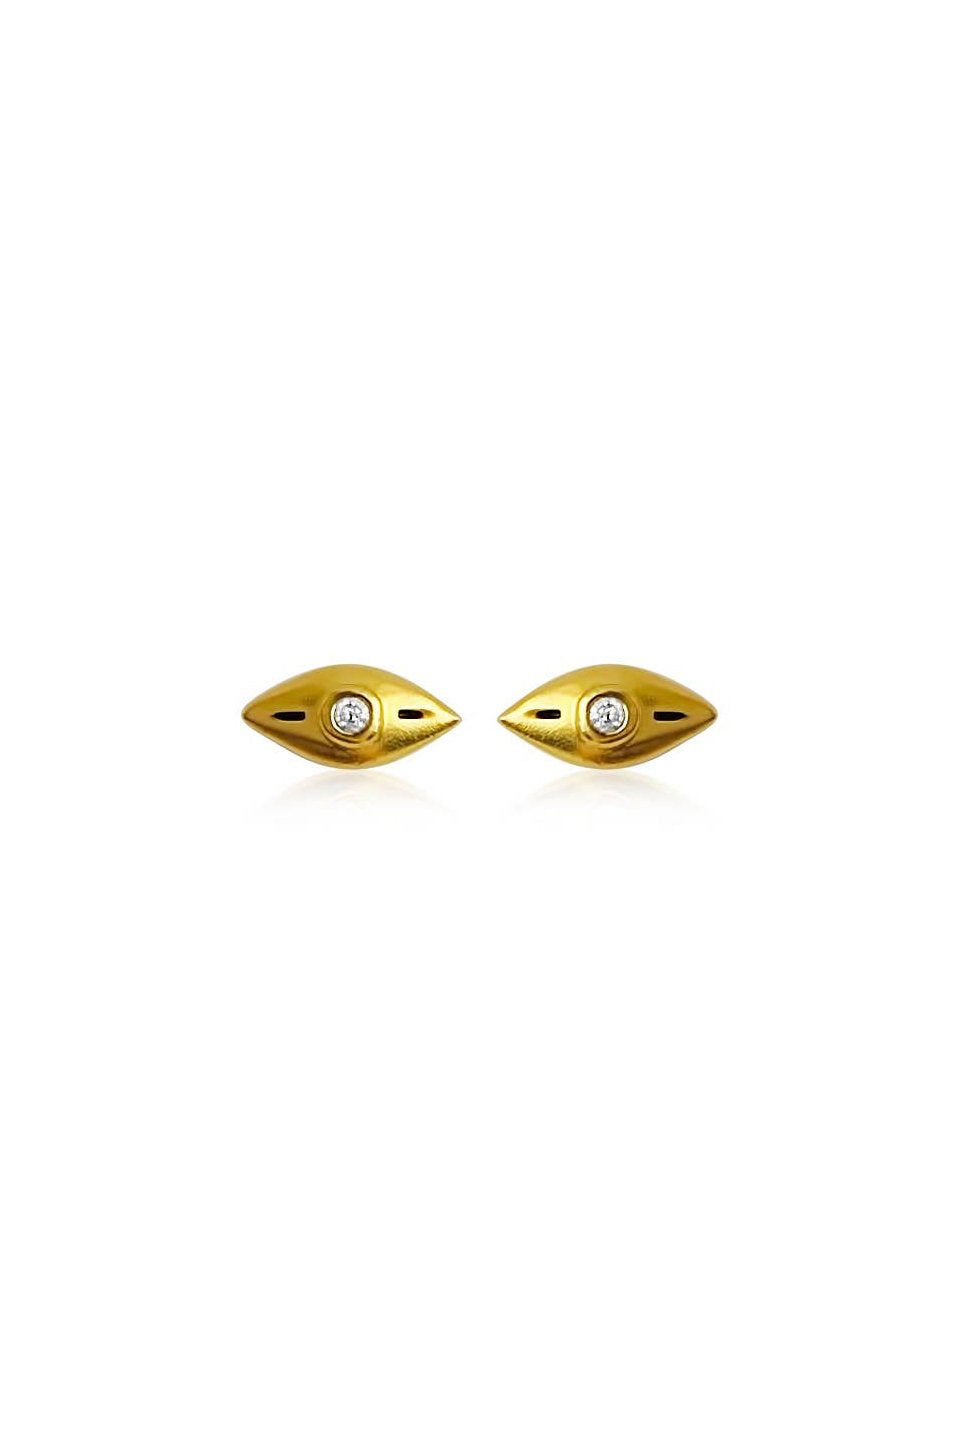 SIERRA WINTER Kismet Stud Earrings